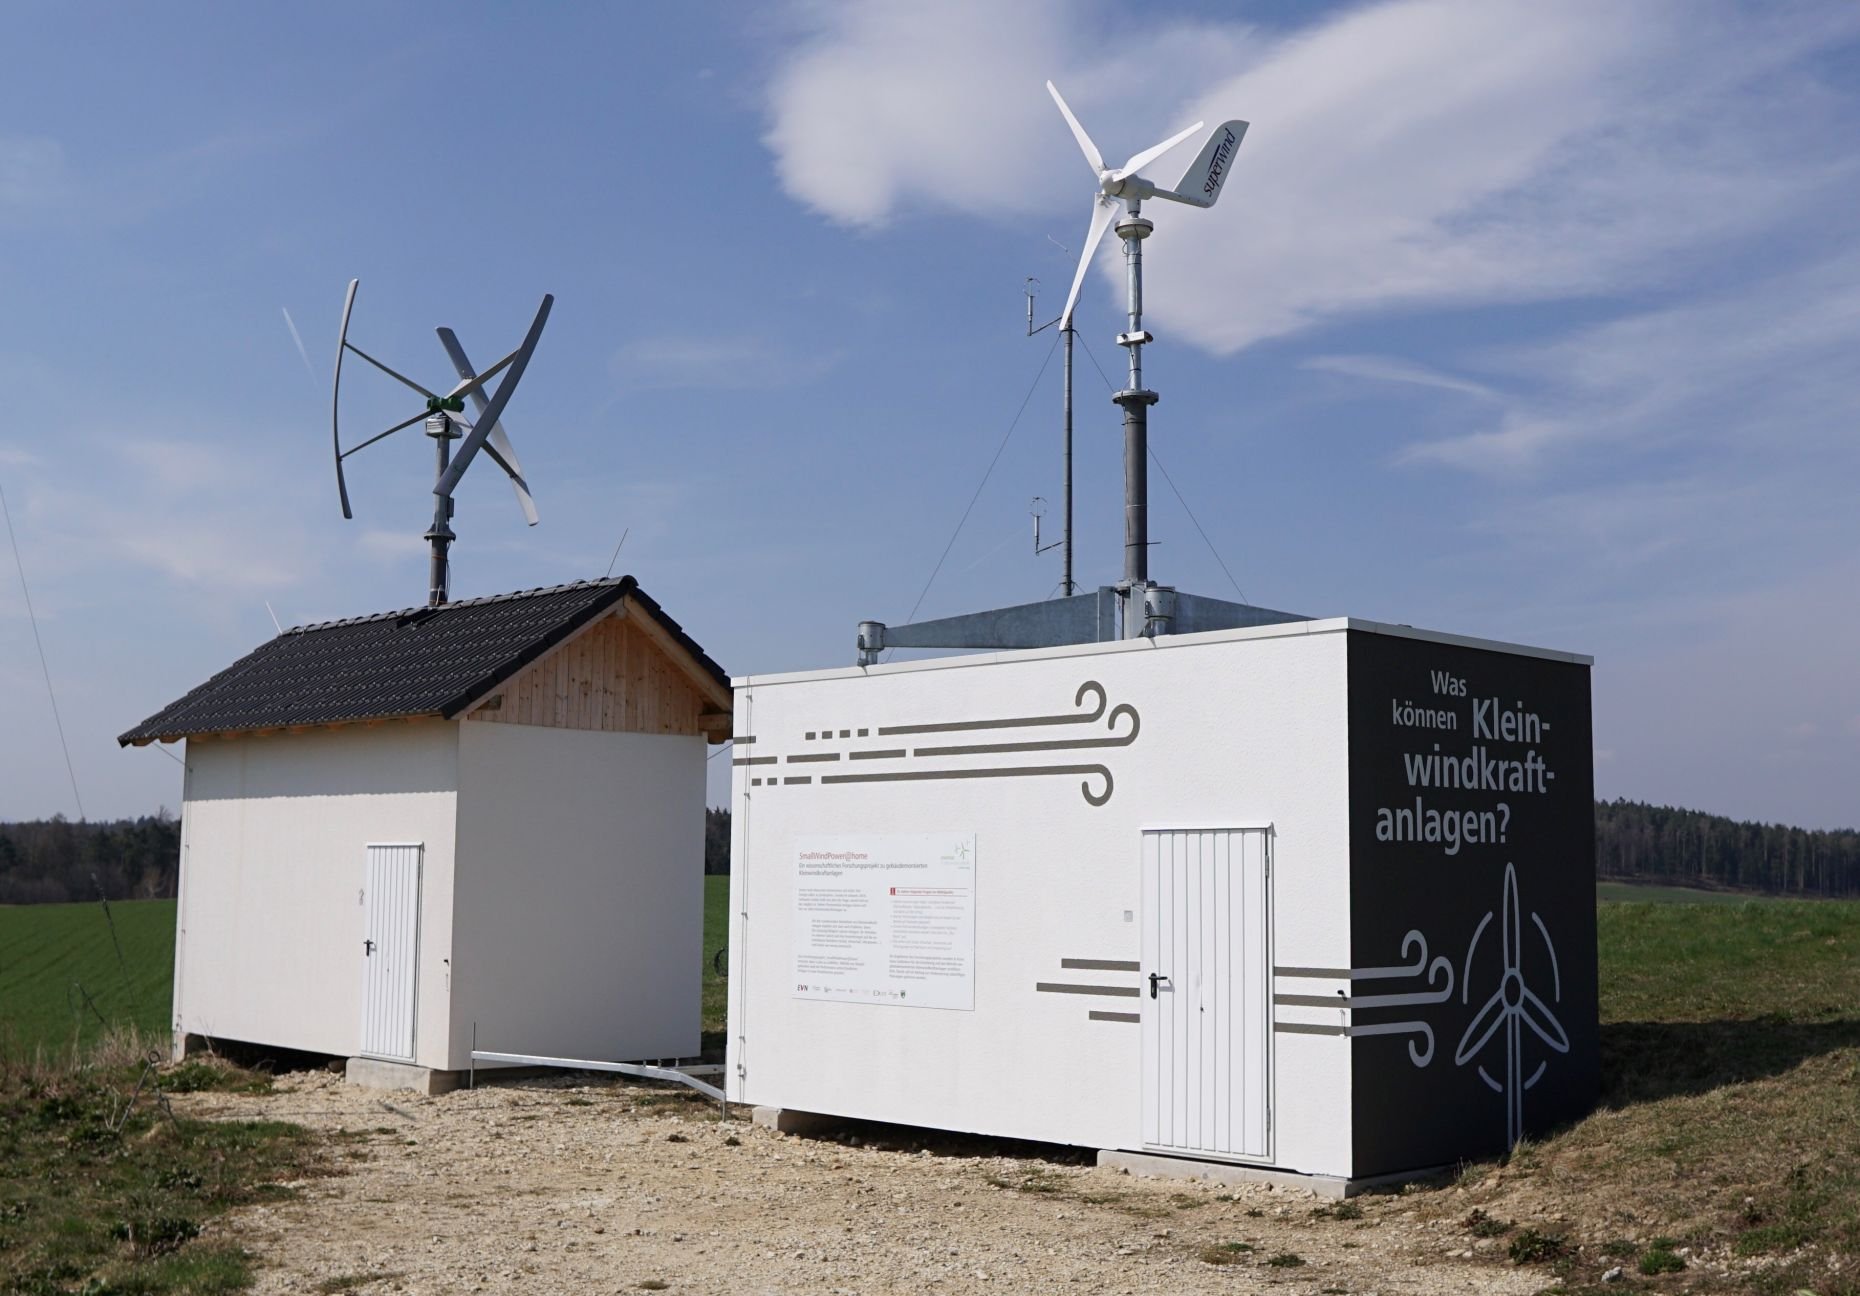 Measurement and testing infrastructure for building mounted Small Wind Turbines at the Energy Research Park Lichtenegg